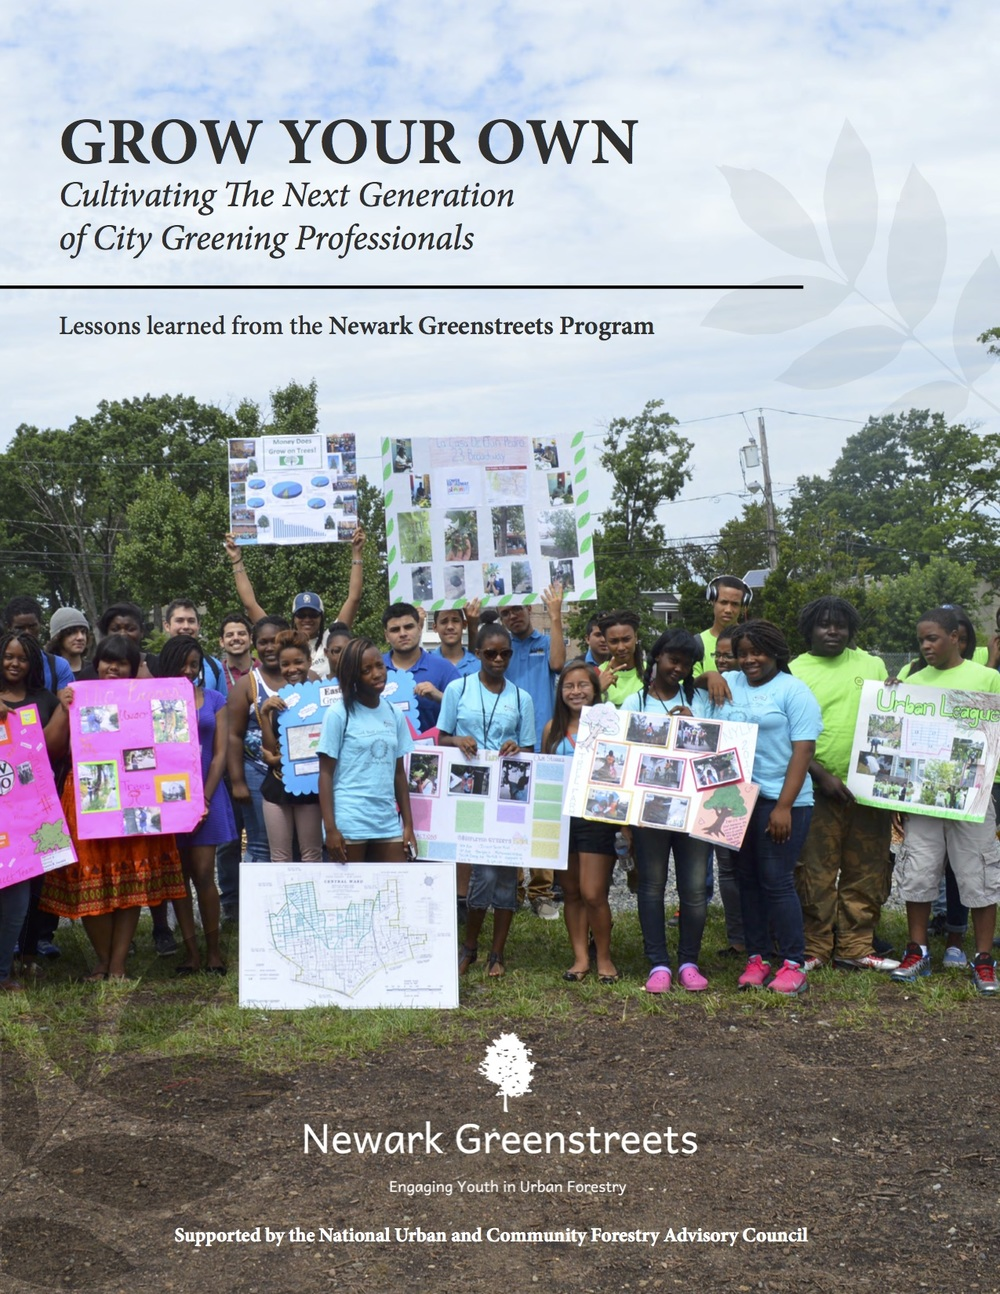 Grow Your Own_Newark Greenstreets-1.jpg